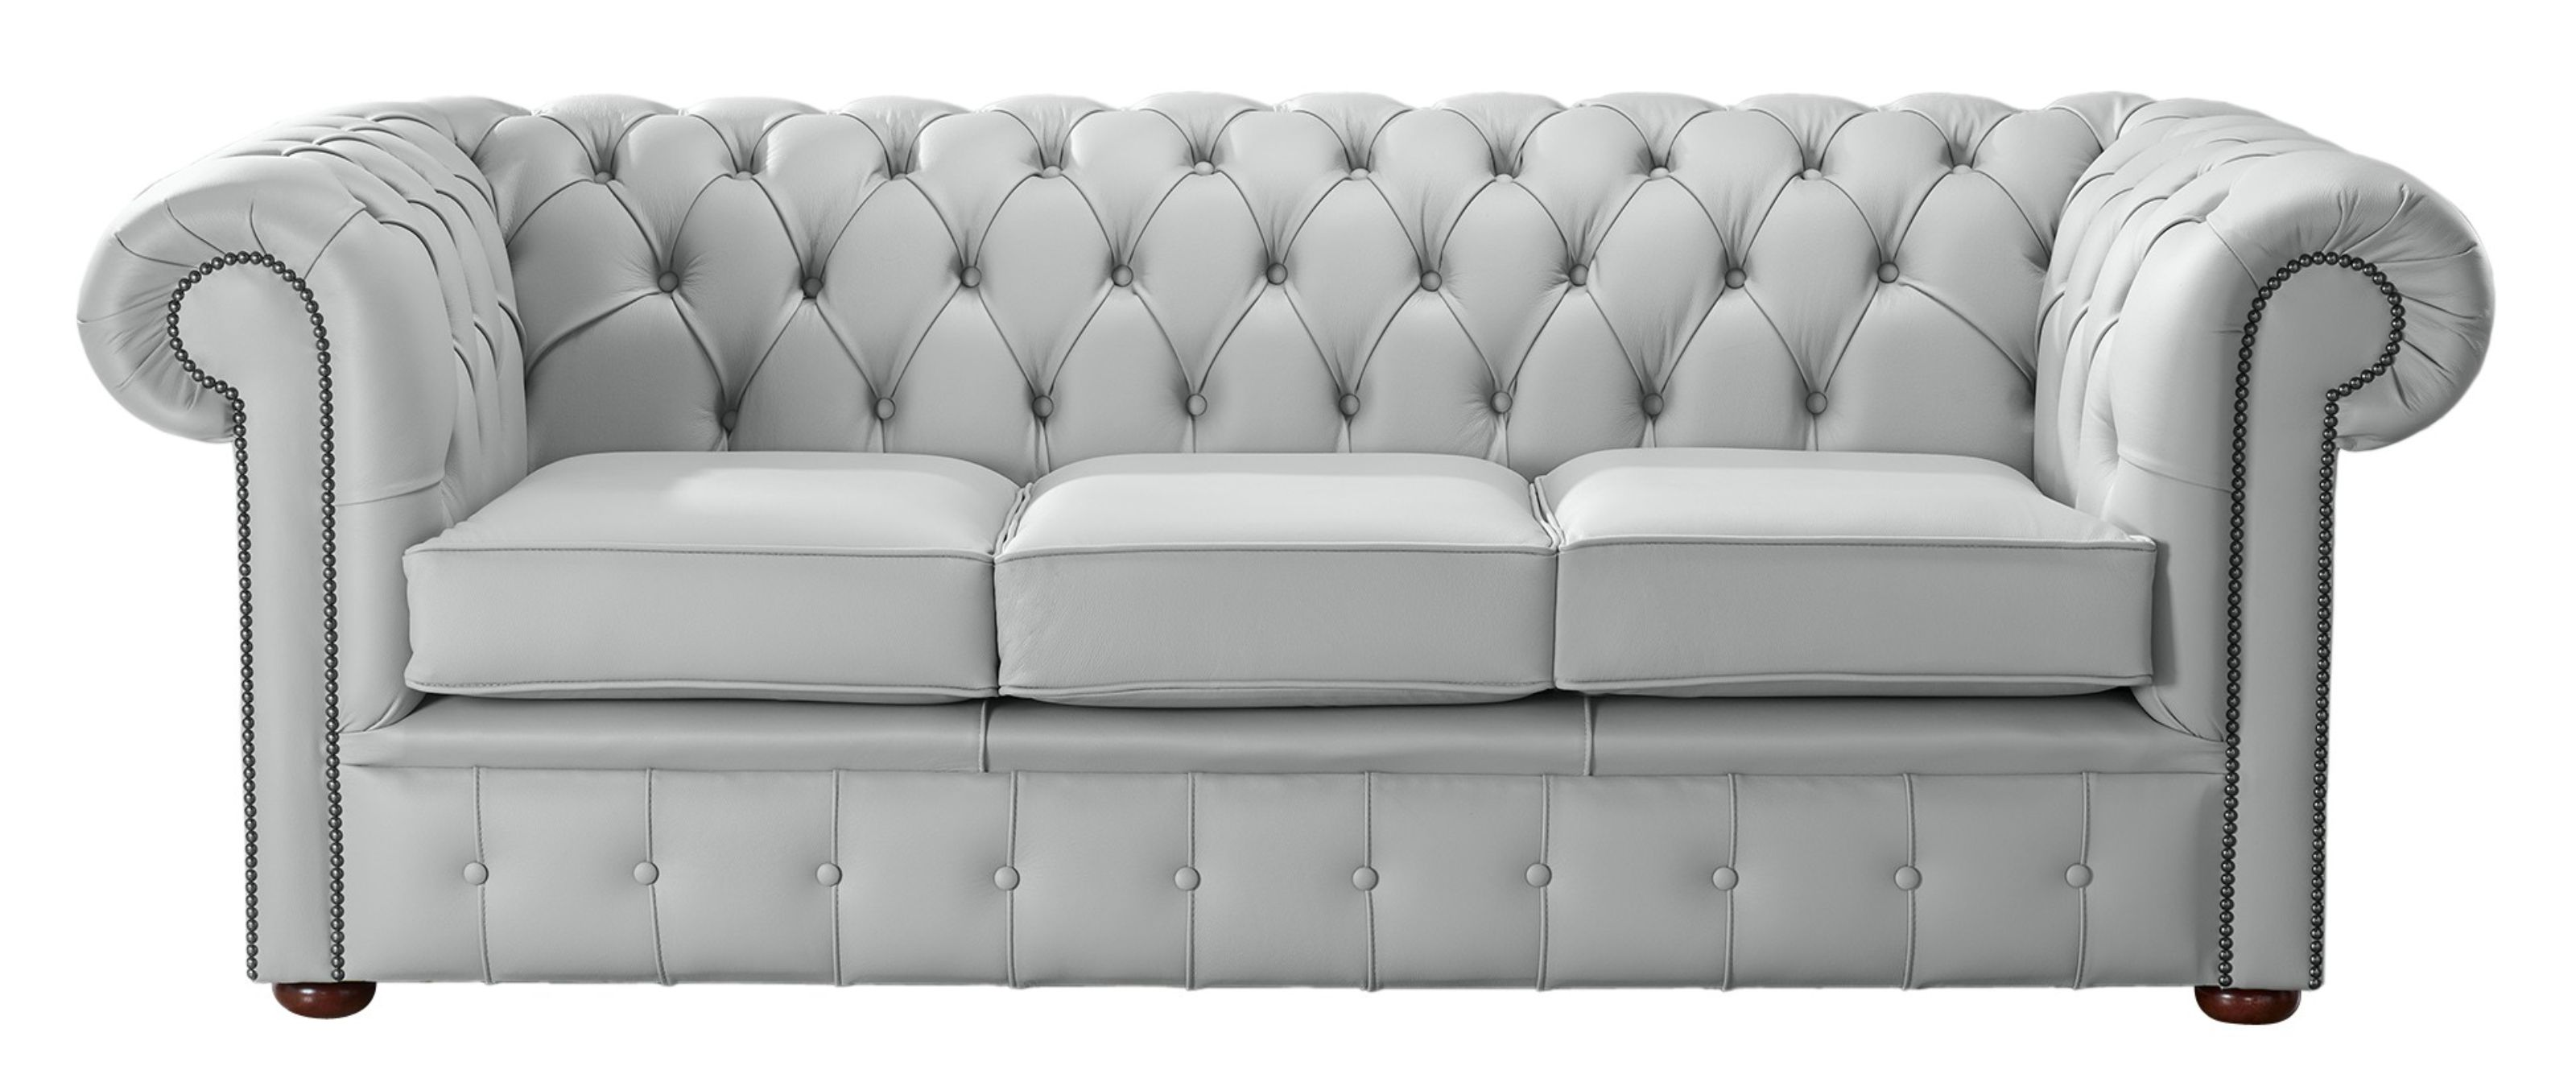 Silver Grey Leather Chesterfield 3 Seater Sofa Designersofas4u